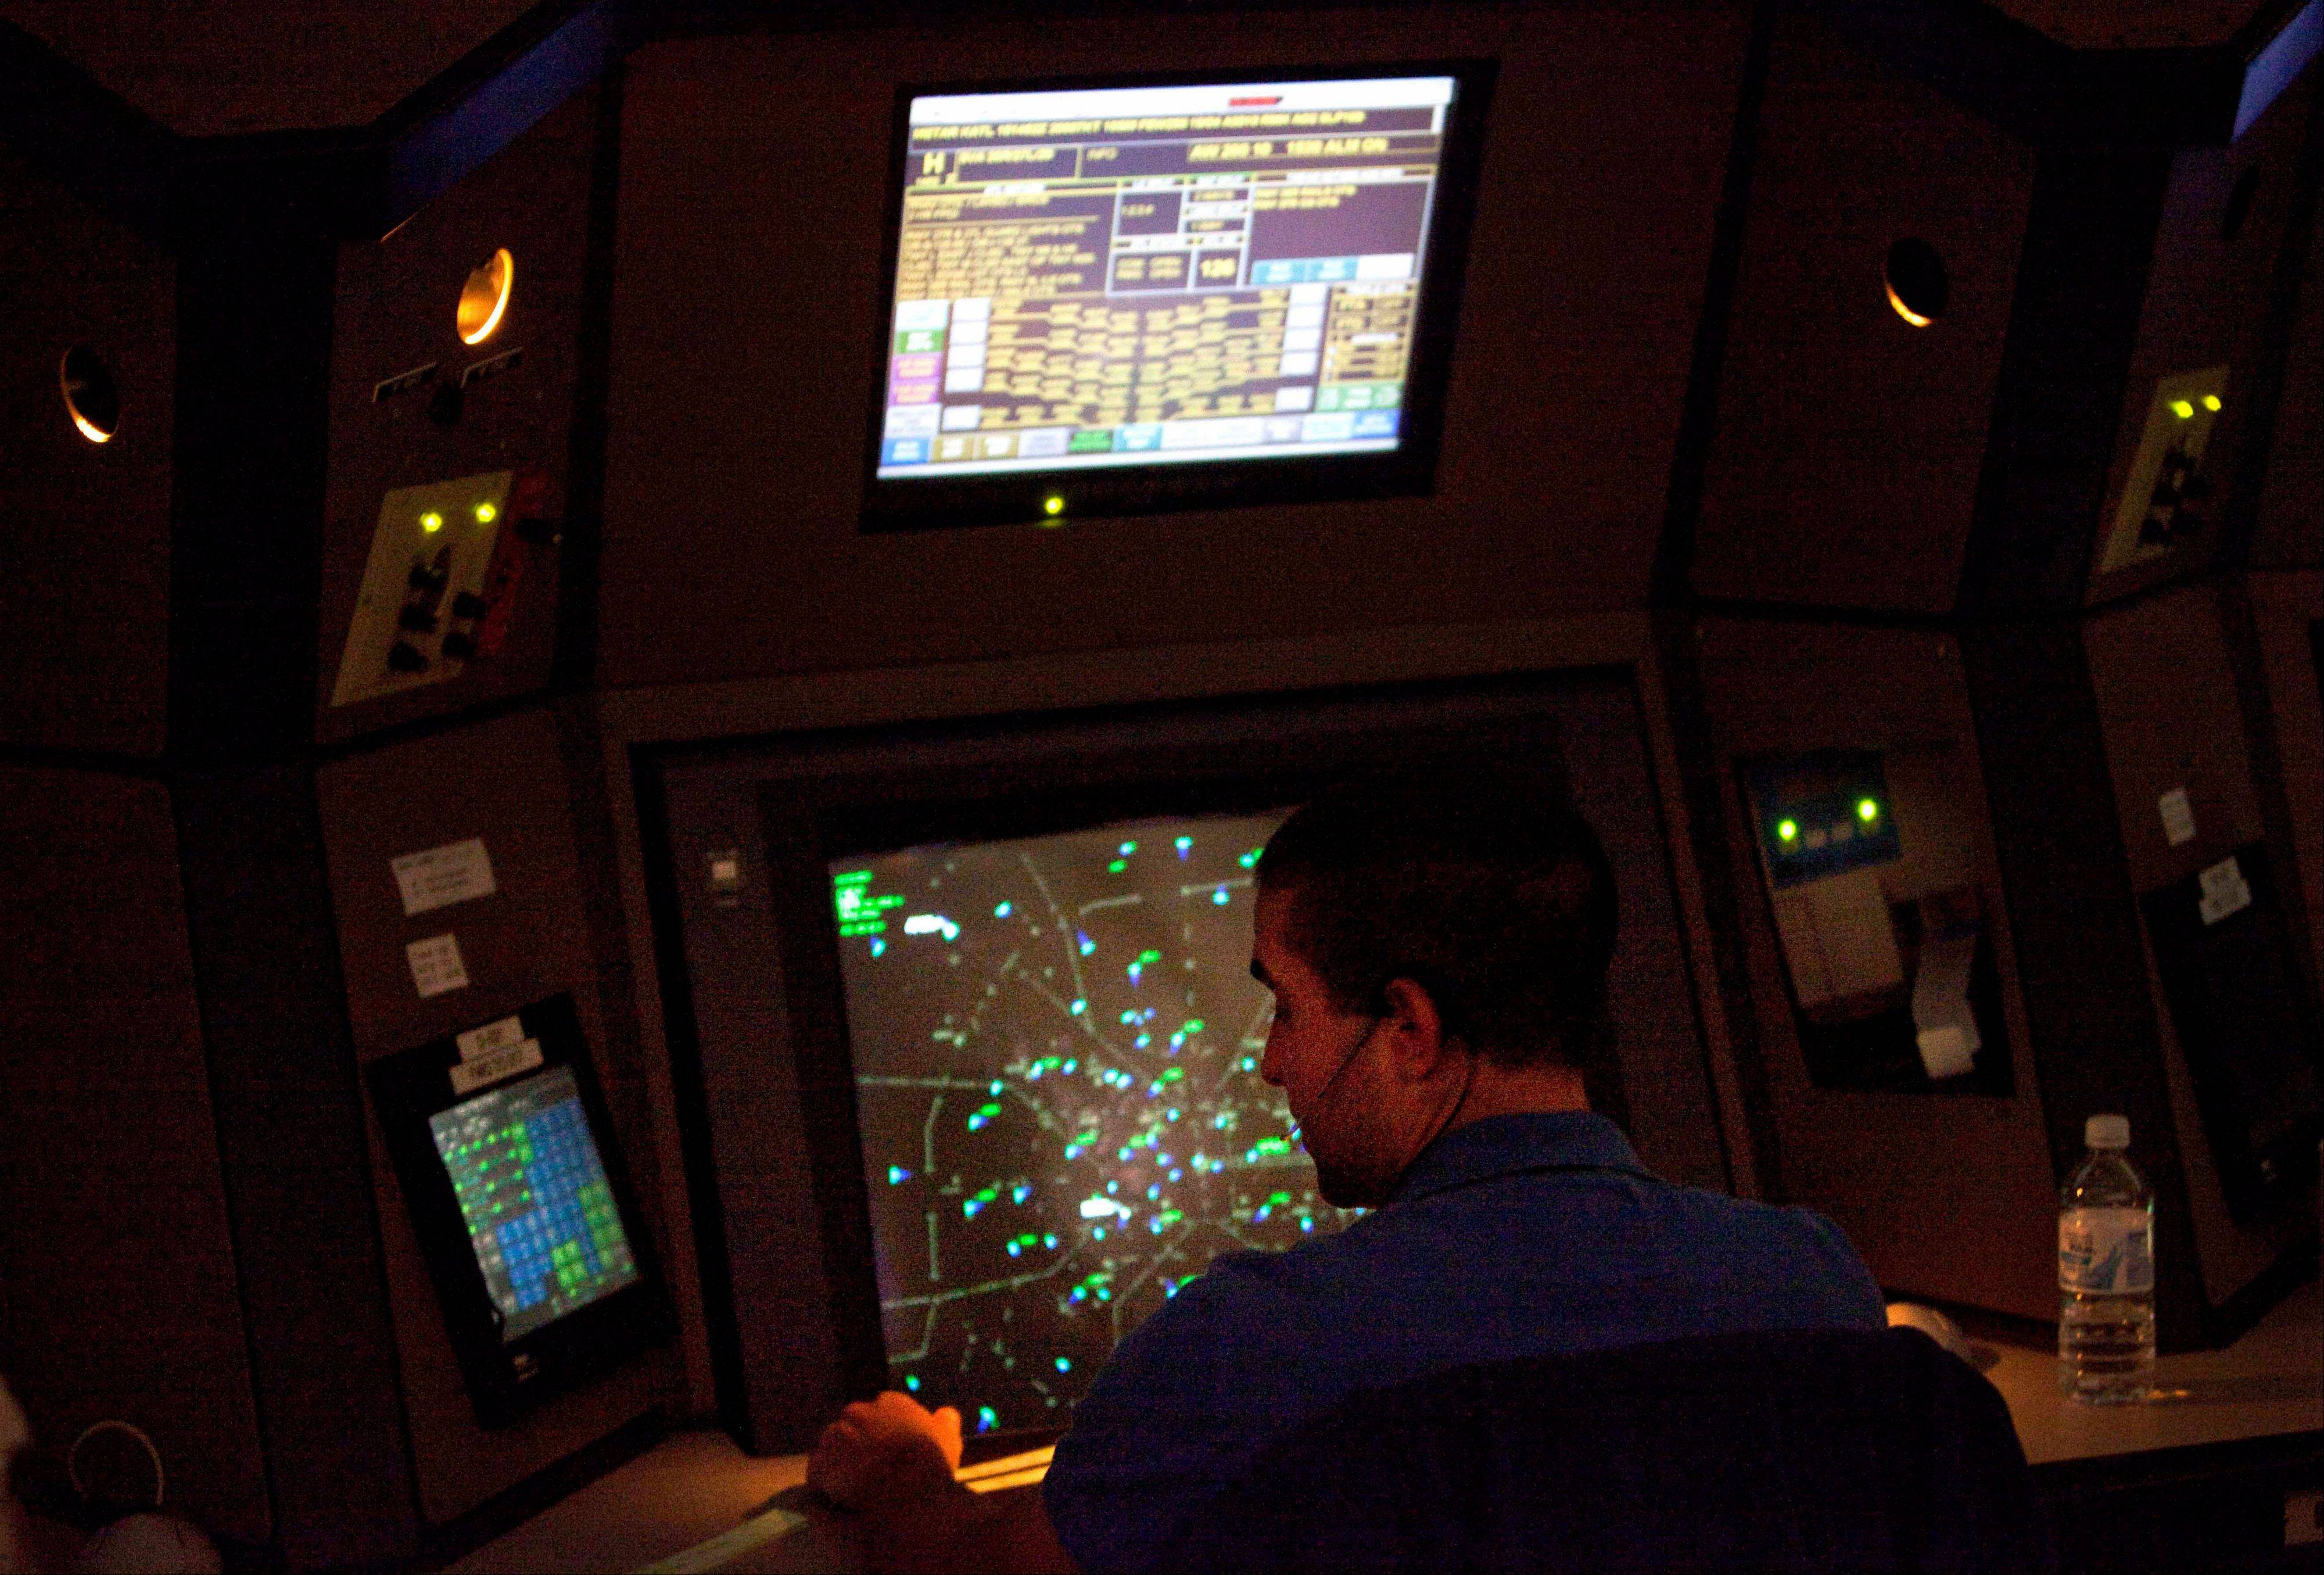 This April 18, 2011 file photo shows an air traffic controller working in a terminal radar approach control room at the Atlanta TRACON in Peachtree City, Ga. As Air traffic controller furloughs kicked in on Sunday, it was largely uneventful with most flights on time. However, Monday could be a different story when air travel ramps up.